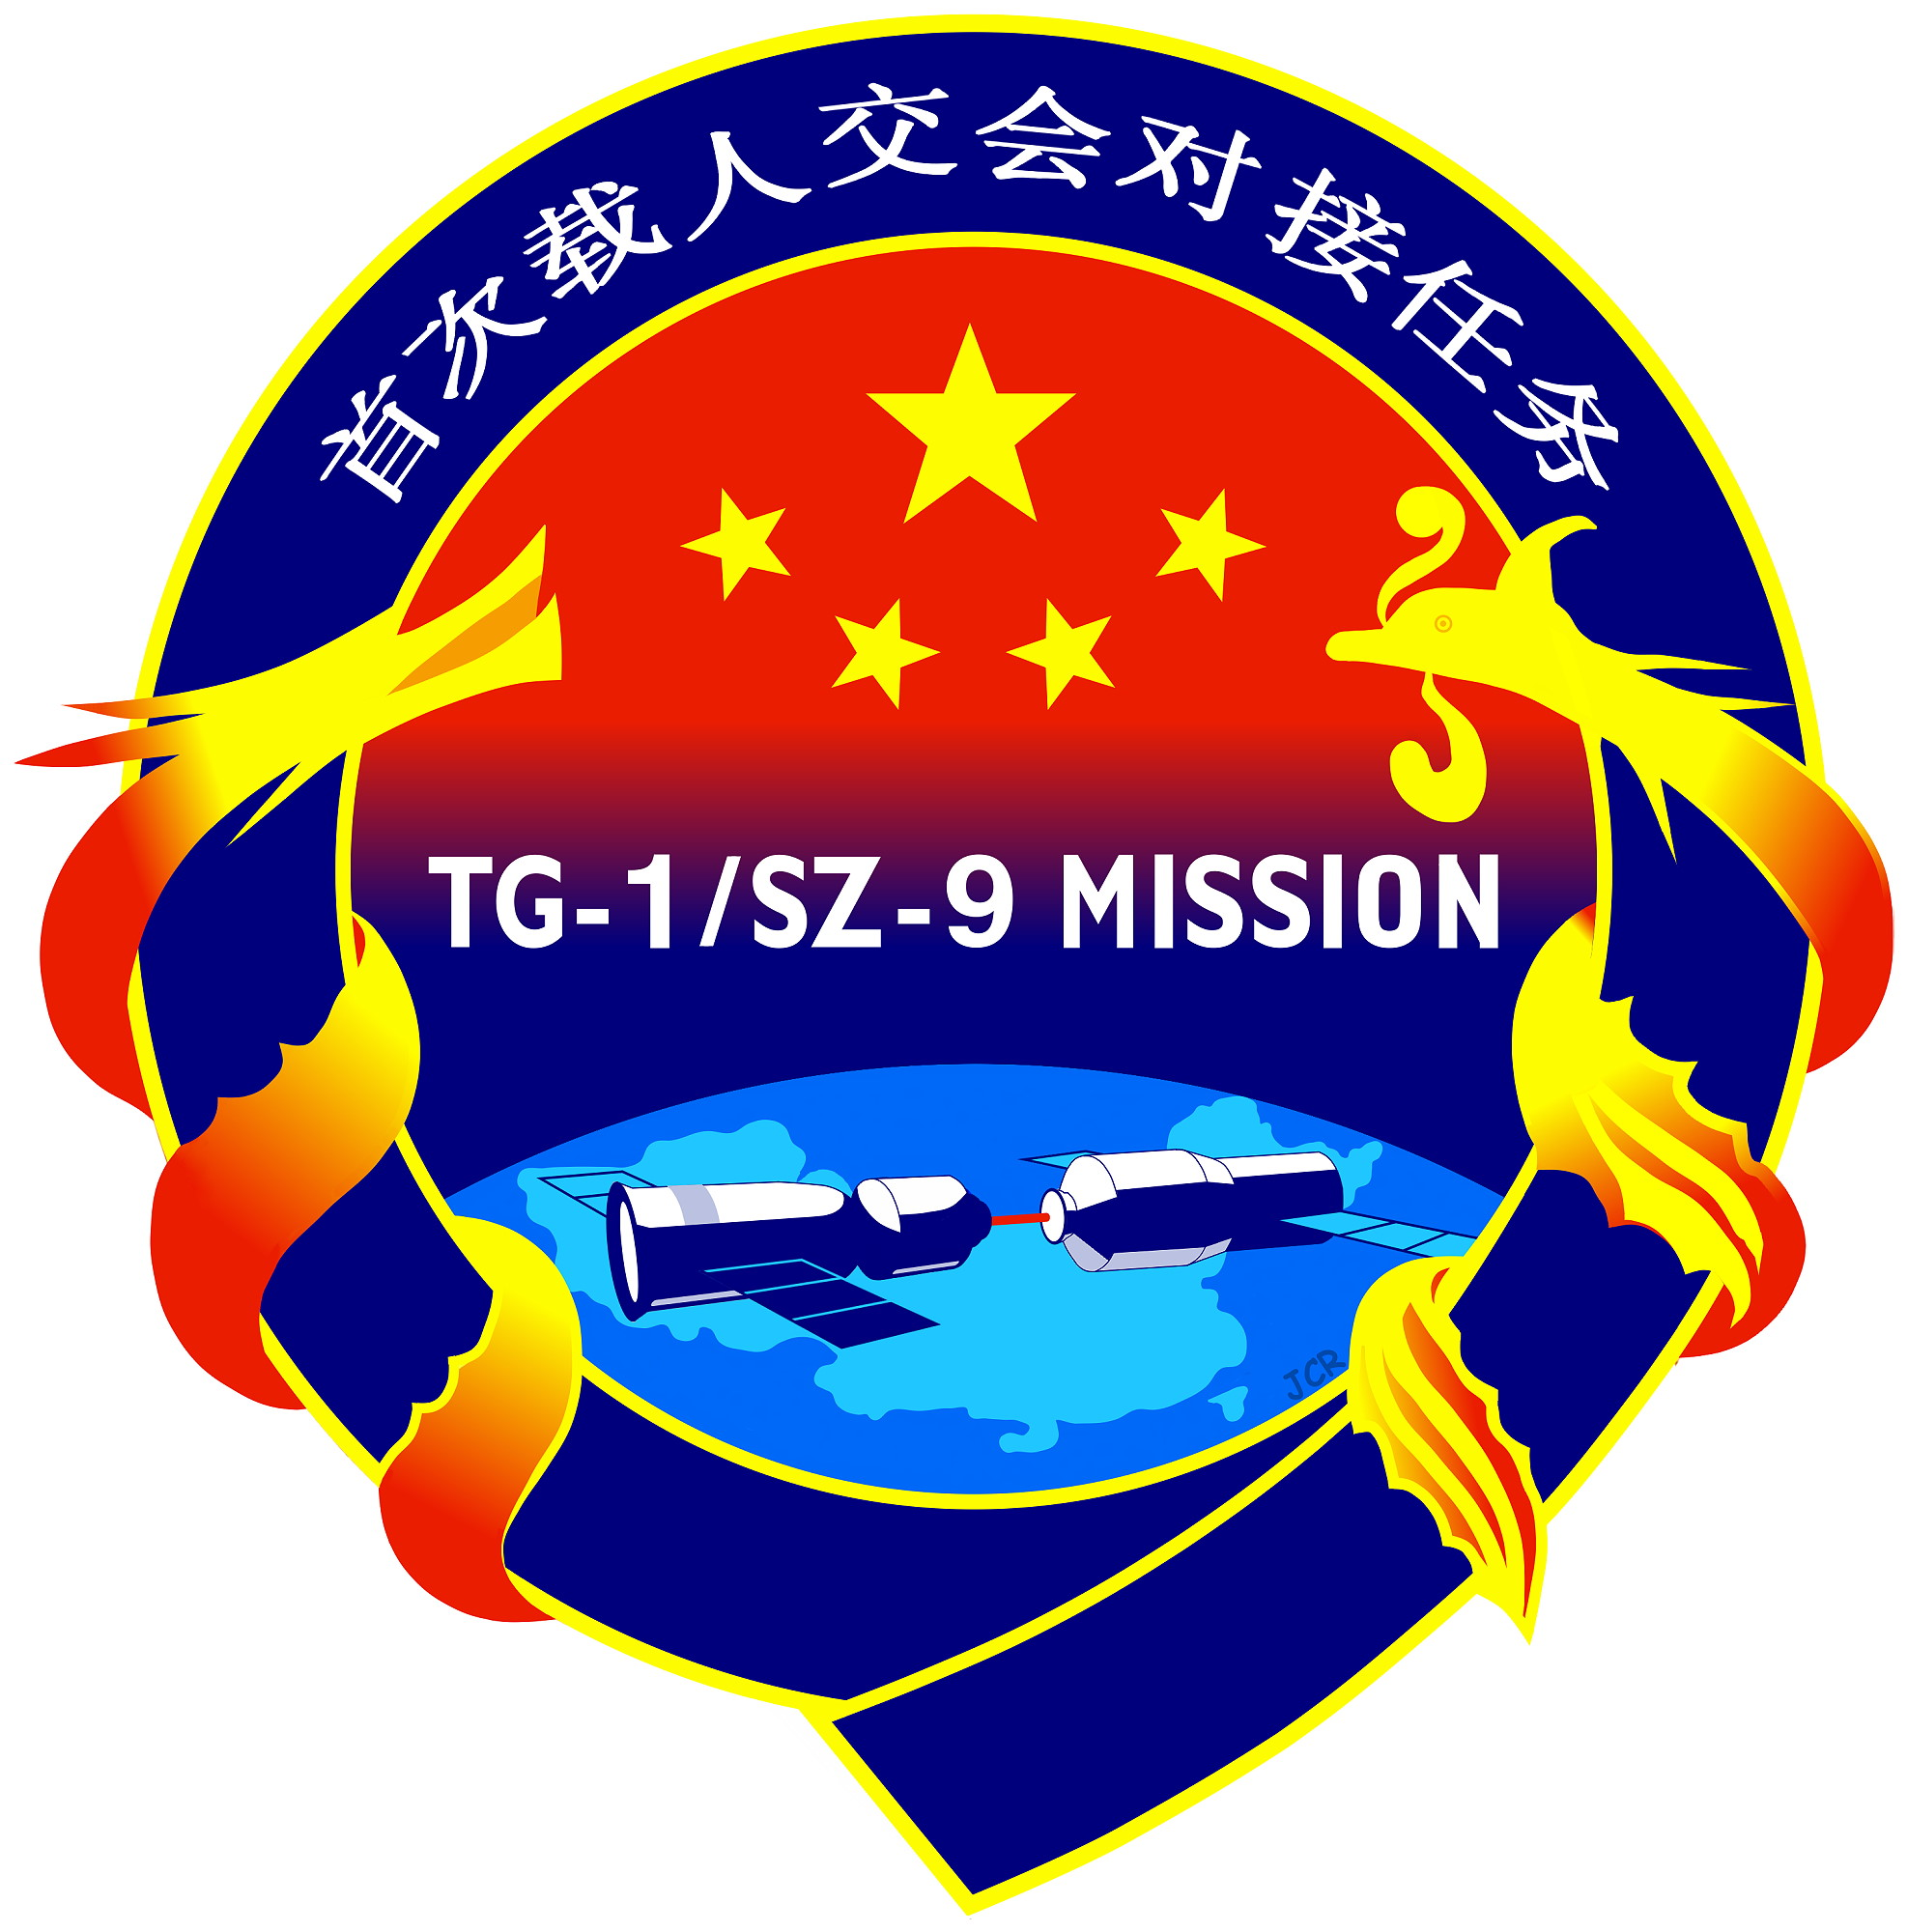 chinese space program patches - photo #2